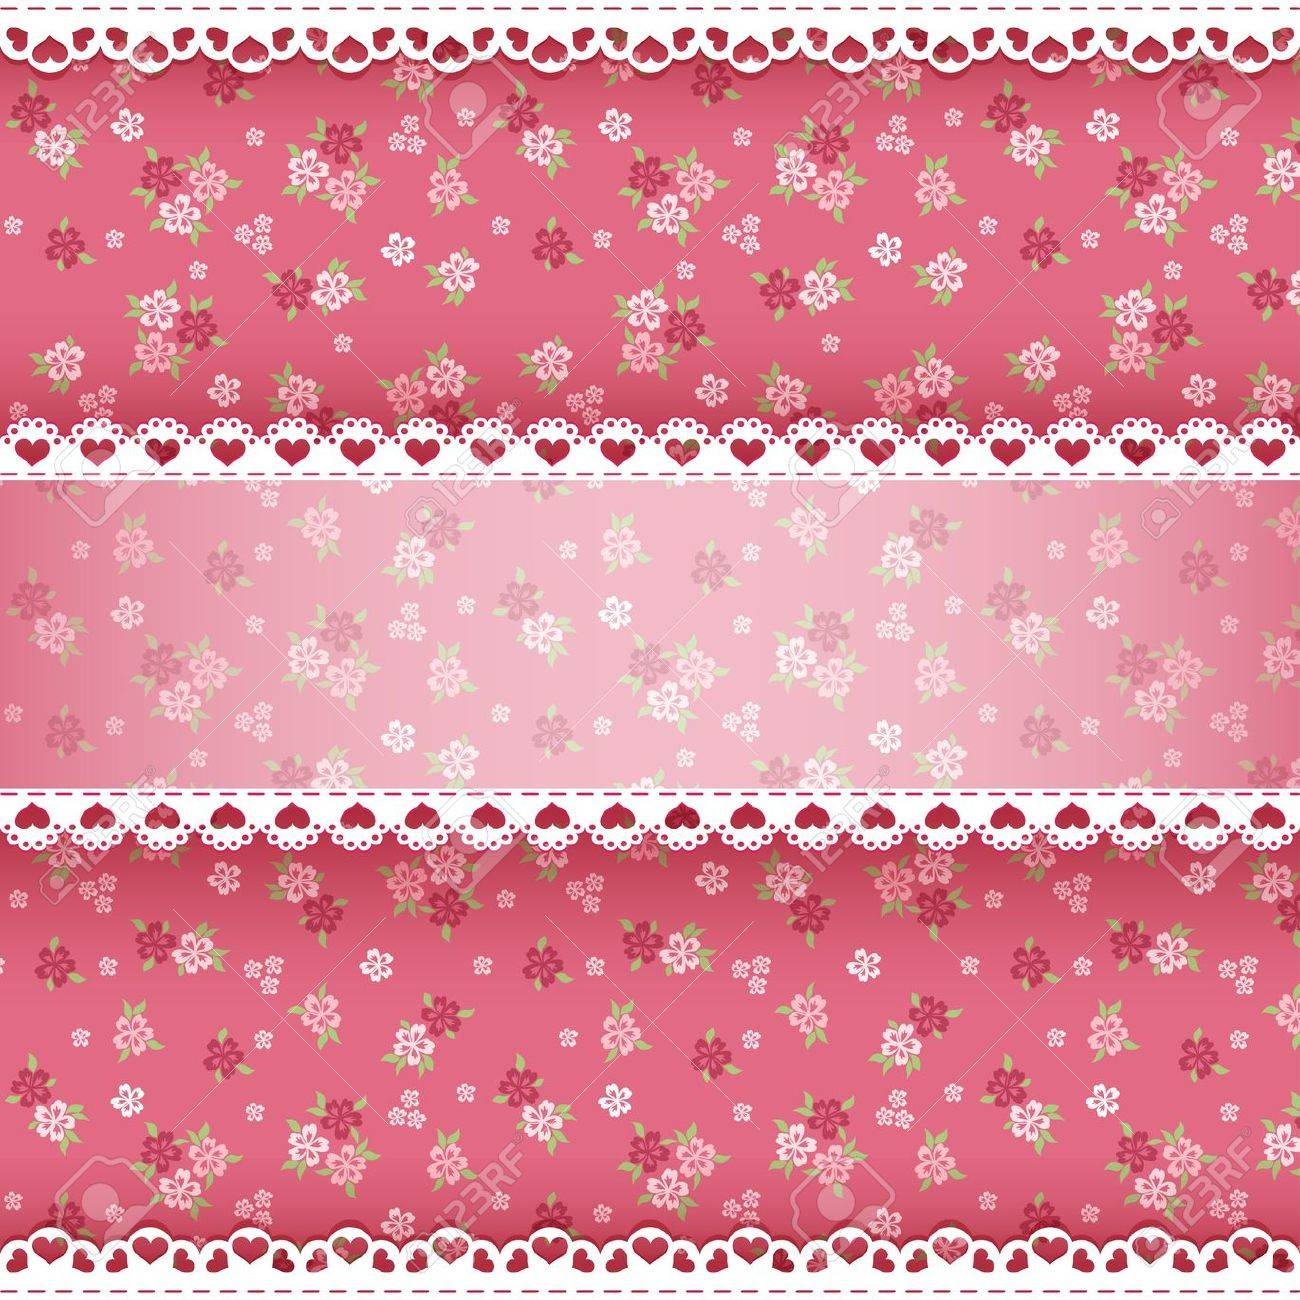 Floral background for scrapbook  Vector illustration Stock Vector - 18253906